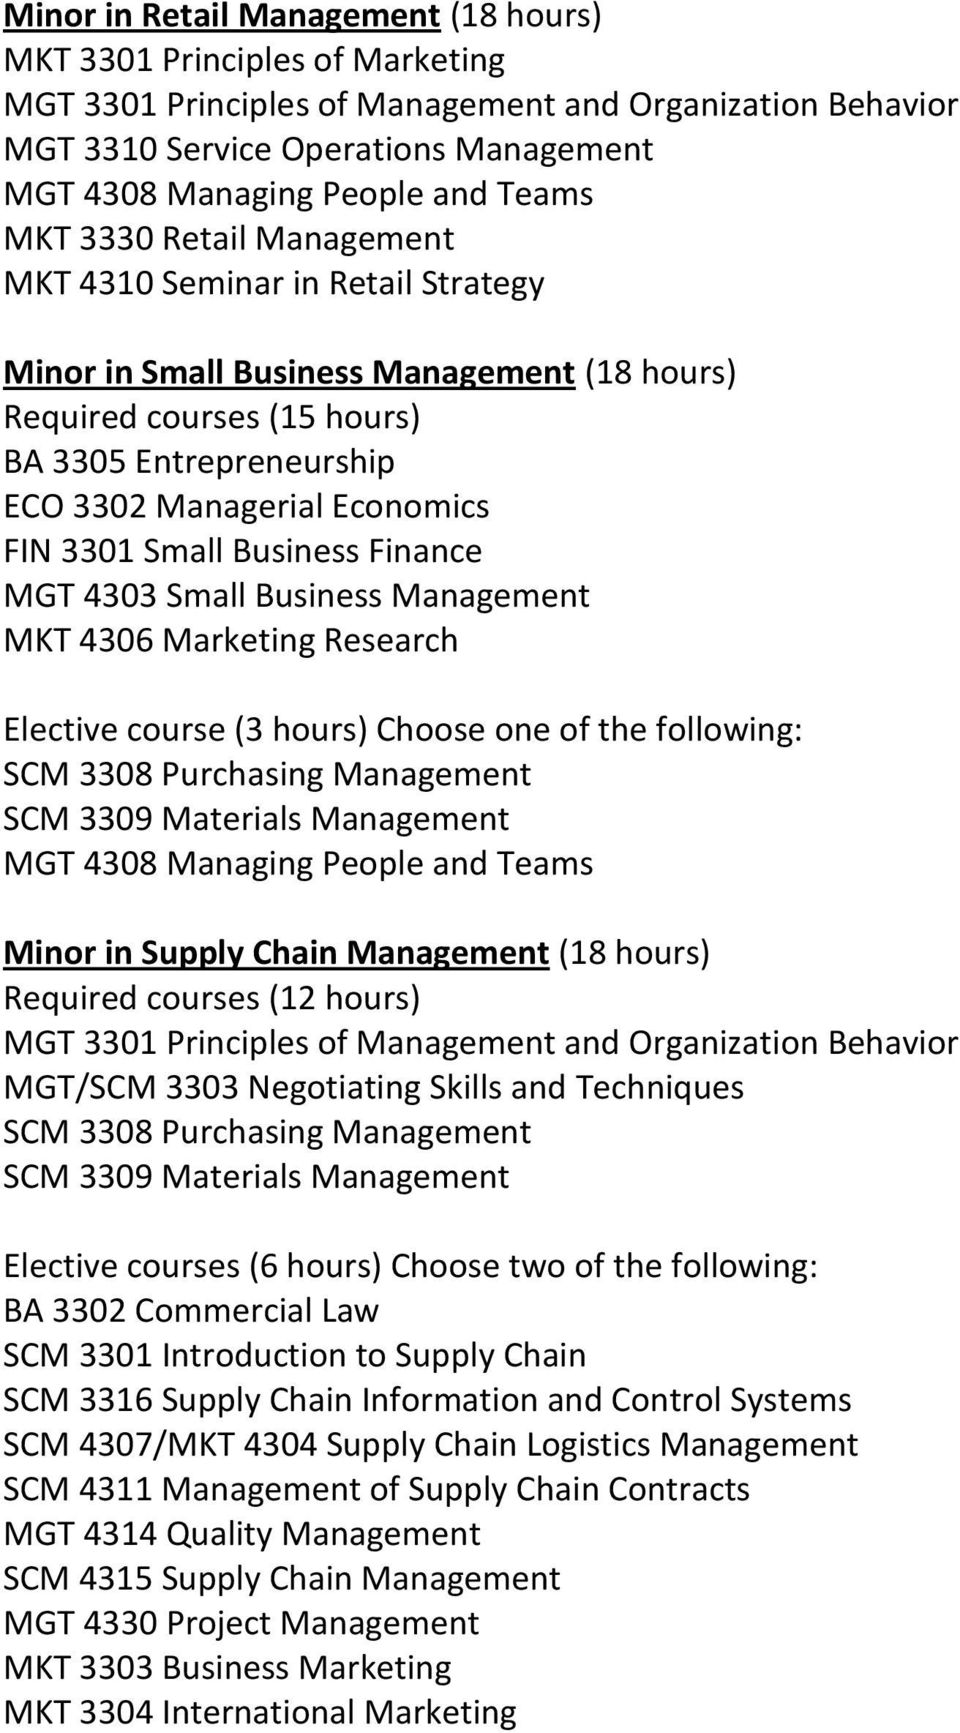 Choose one of the following: SCM 3308 Purchasing Management SCM 3309 Materials Management Minor in Supply Chain Management (18 hours) Required courses (12 hours) SCM 3308 Purchasing Management SCM